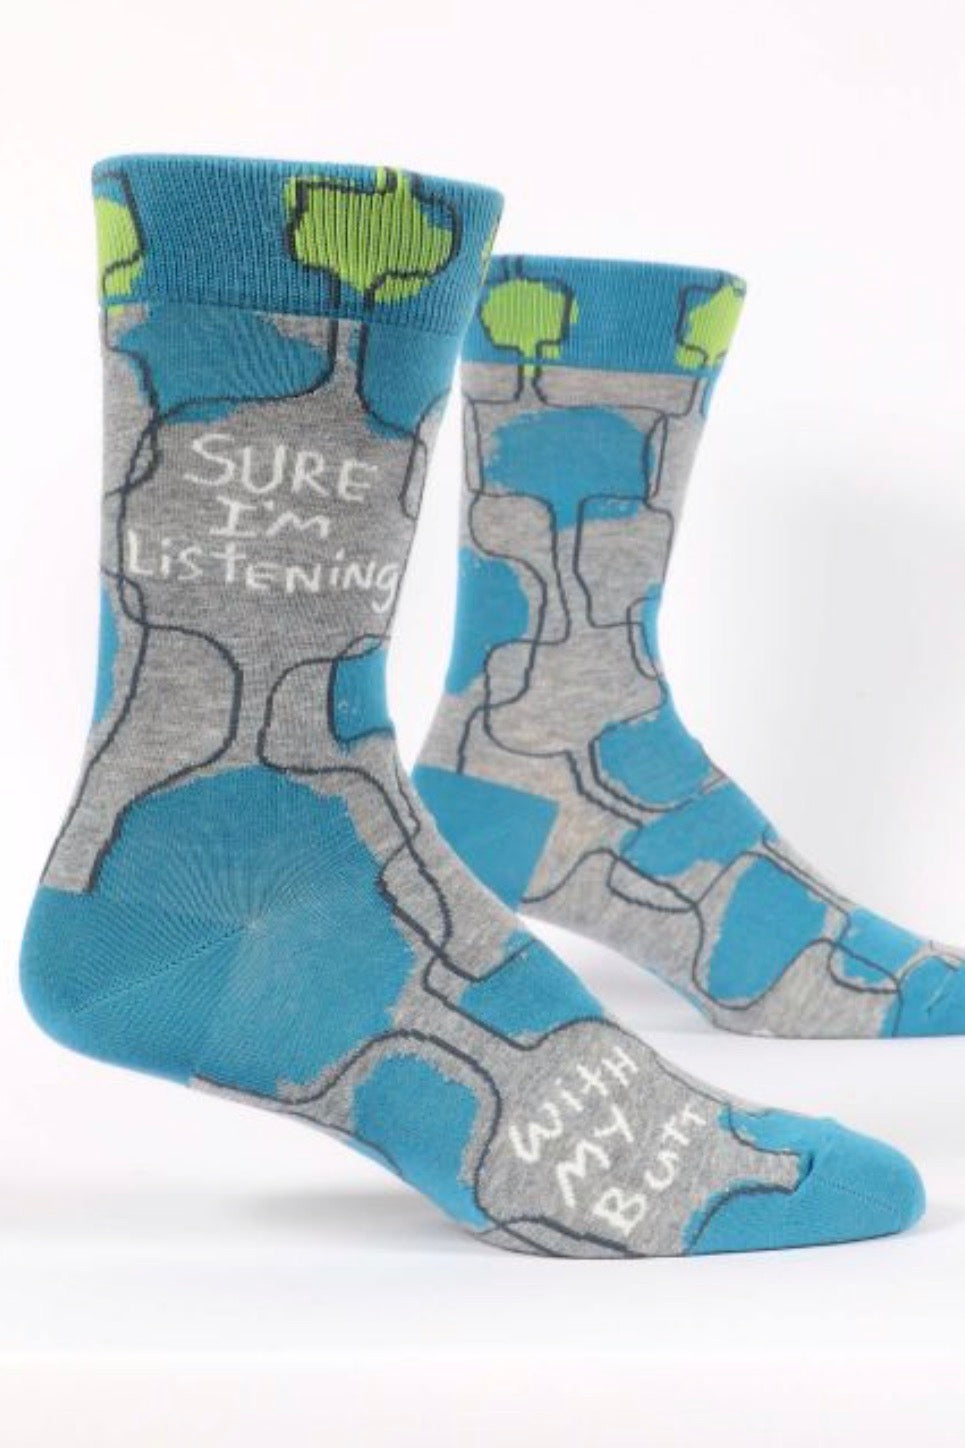 Sure I'm Listening Men's Crew Socks